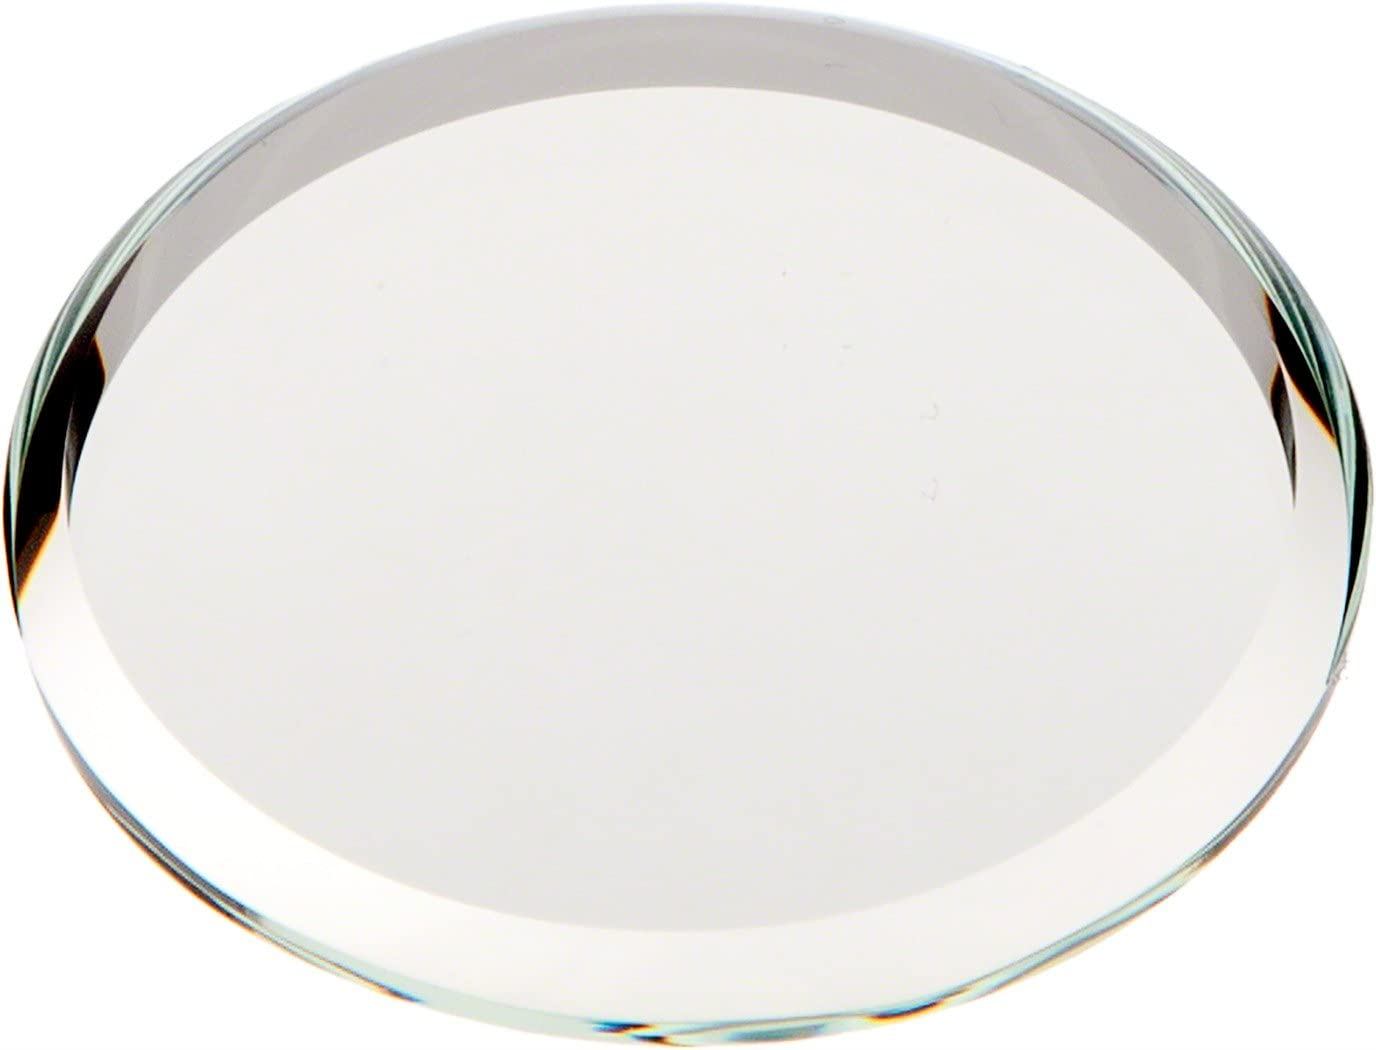 Plymor Round 3mm Beveled Glass Mirror, 1.5 inch x 1.5 inch Pack of 144